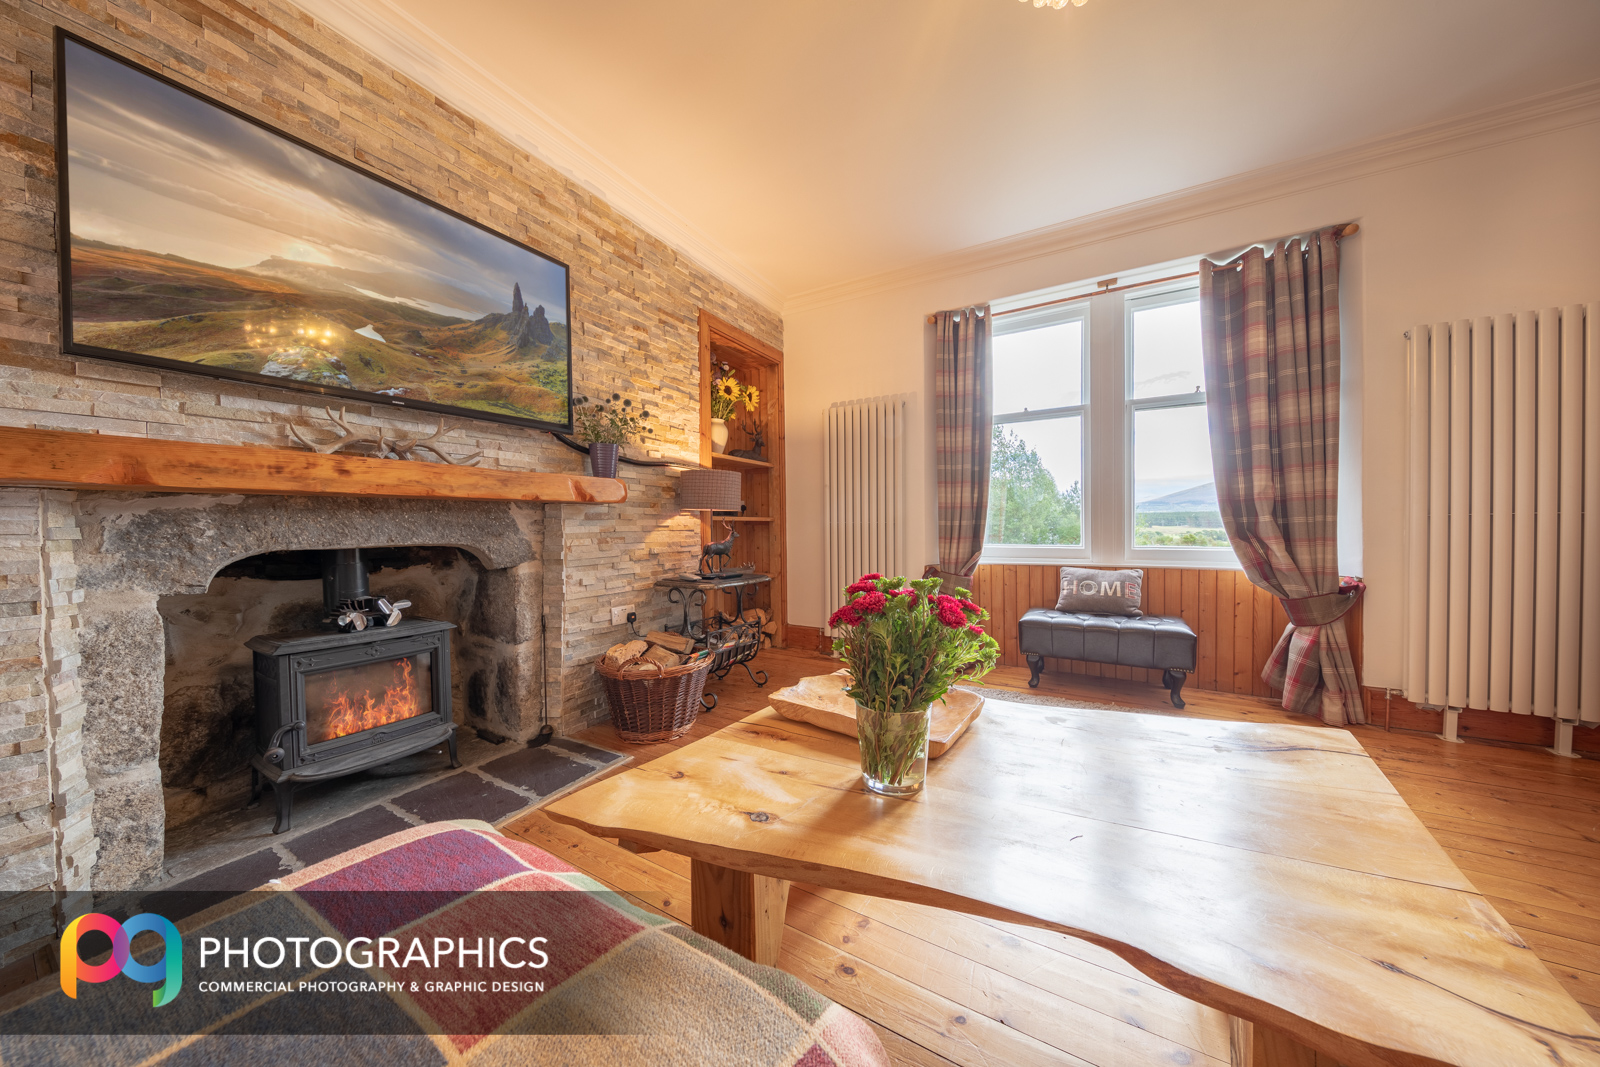 real-estate-property-photography-glasgow-edinburgh-scotland-5.jpg